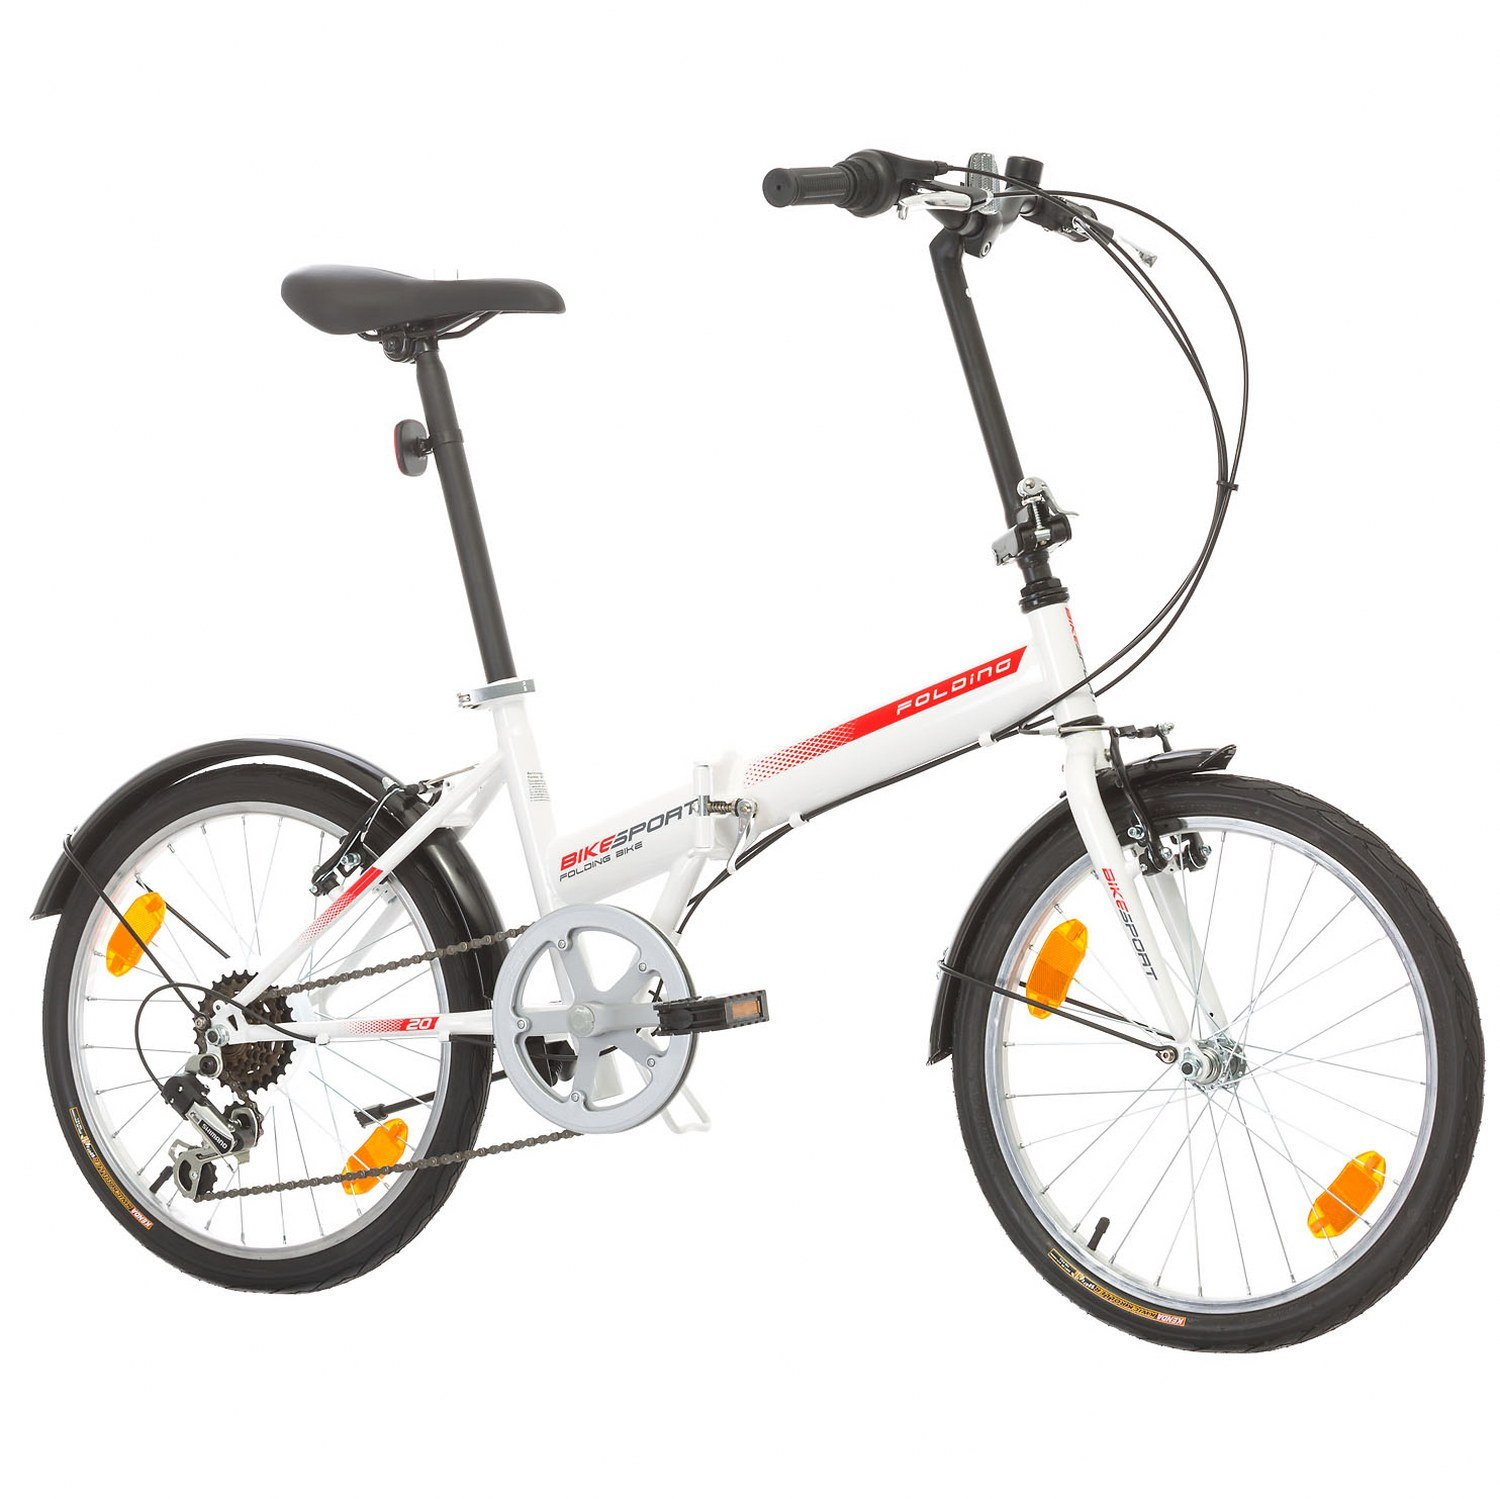 Bikesport FOLDING Bicicleta plegable ruedas de 20